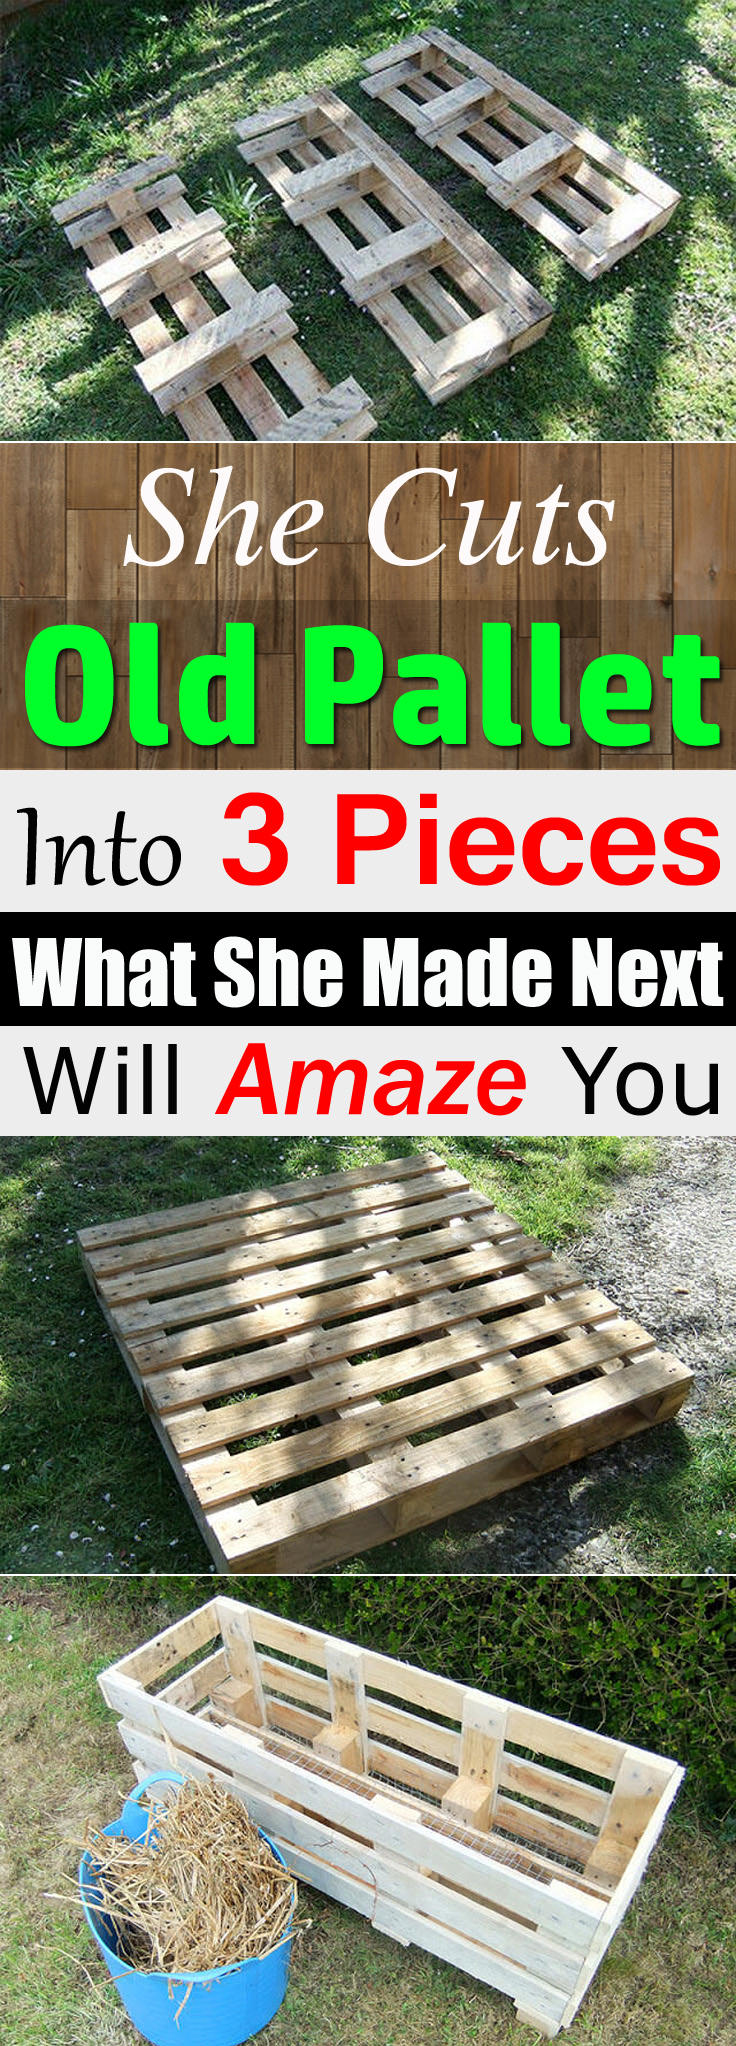 She-Cuts-Old-Pallets-into-3-Pieces.-What-She-Made-Next-Will-Amaze-You-22